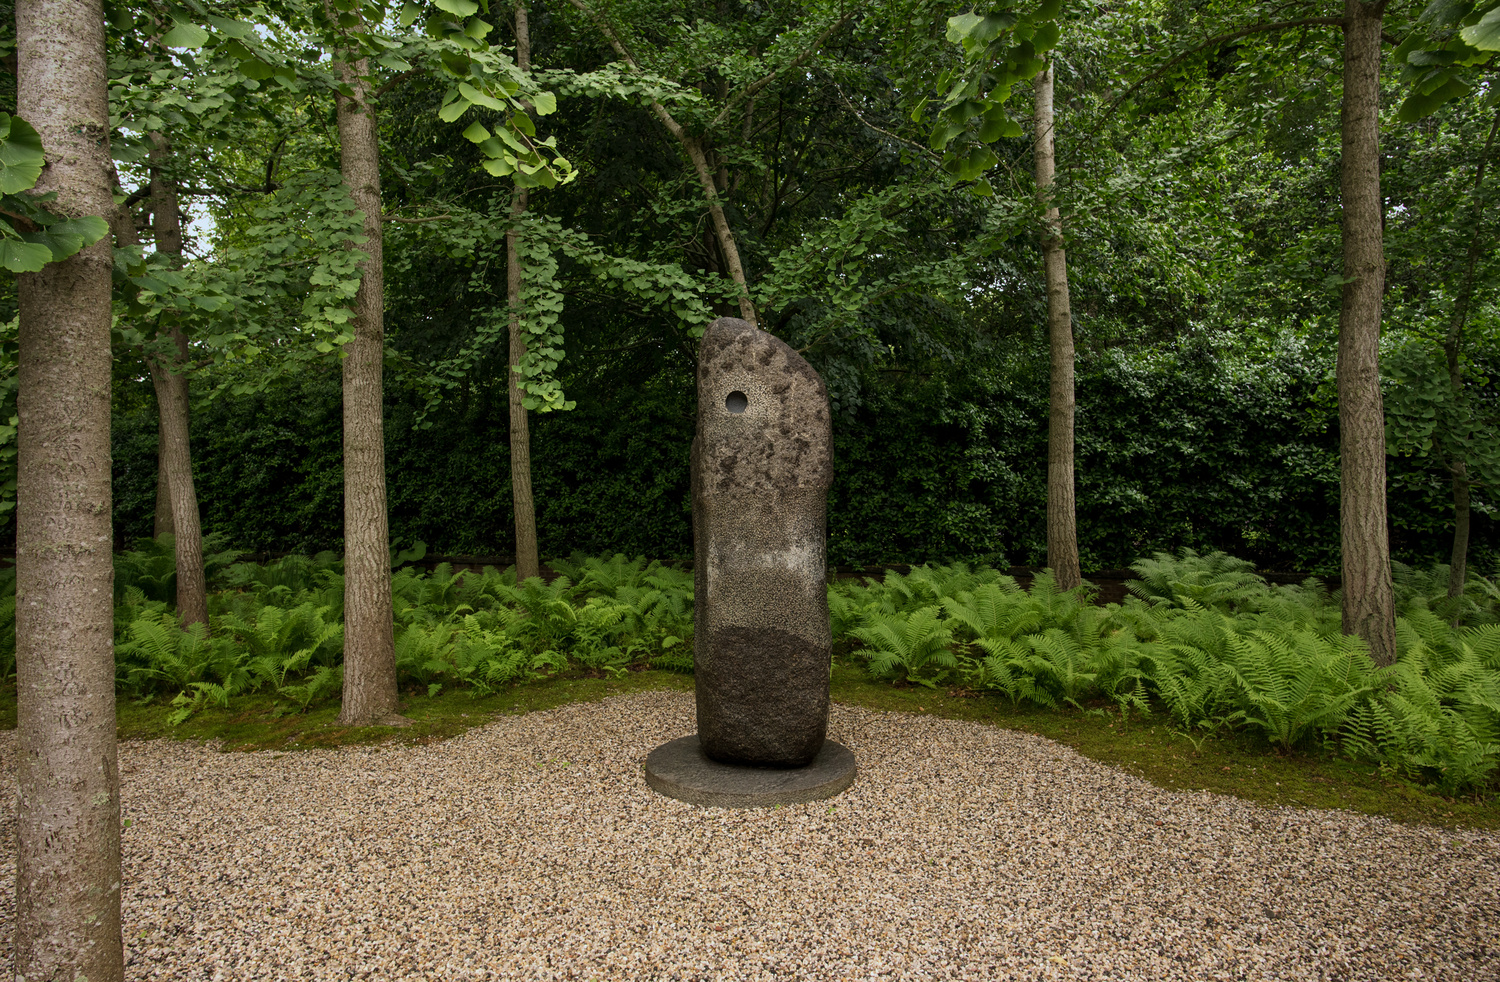 Noguchi Sculpture by Graham Hebel